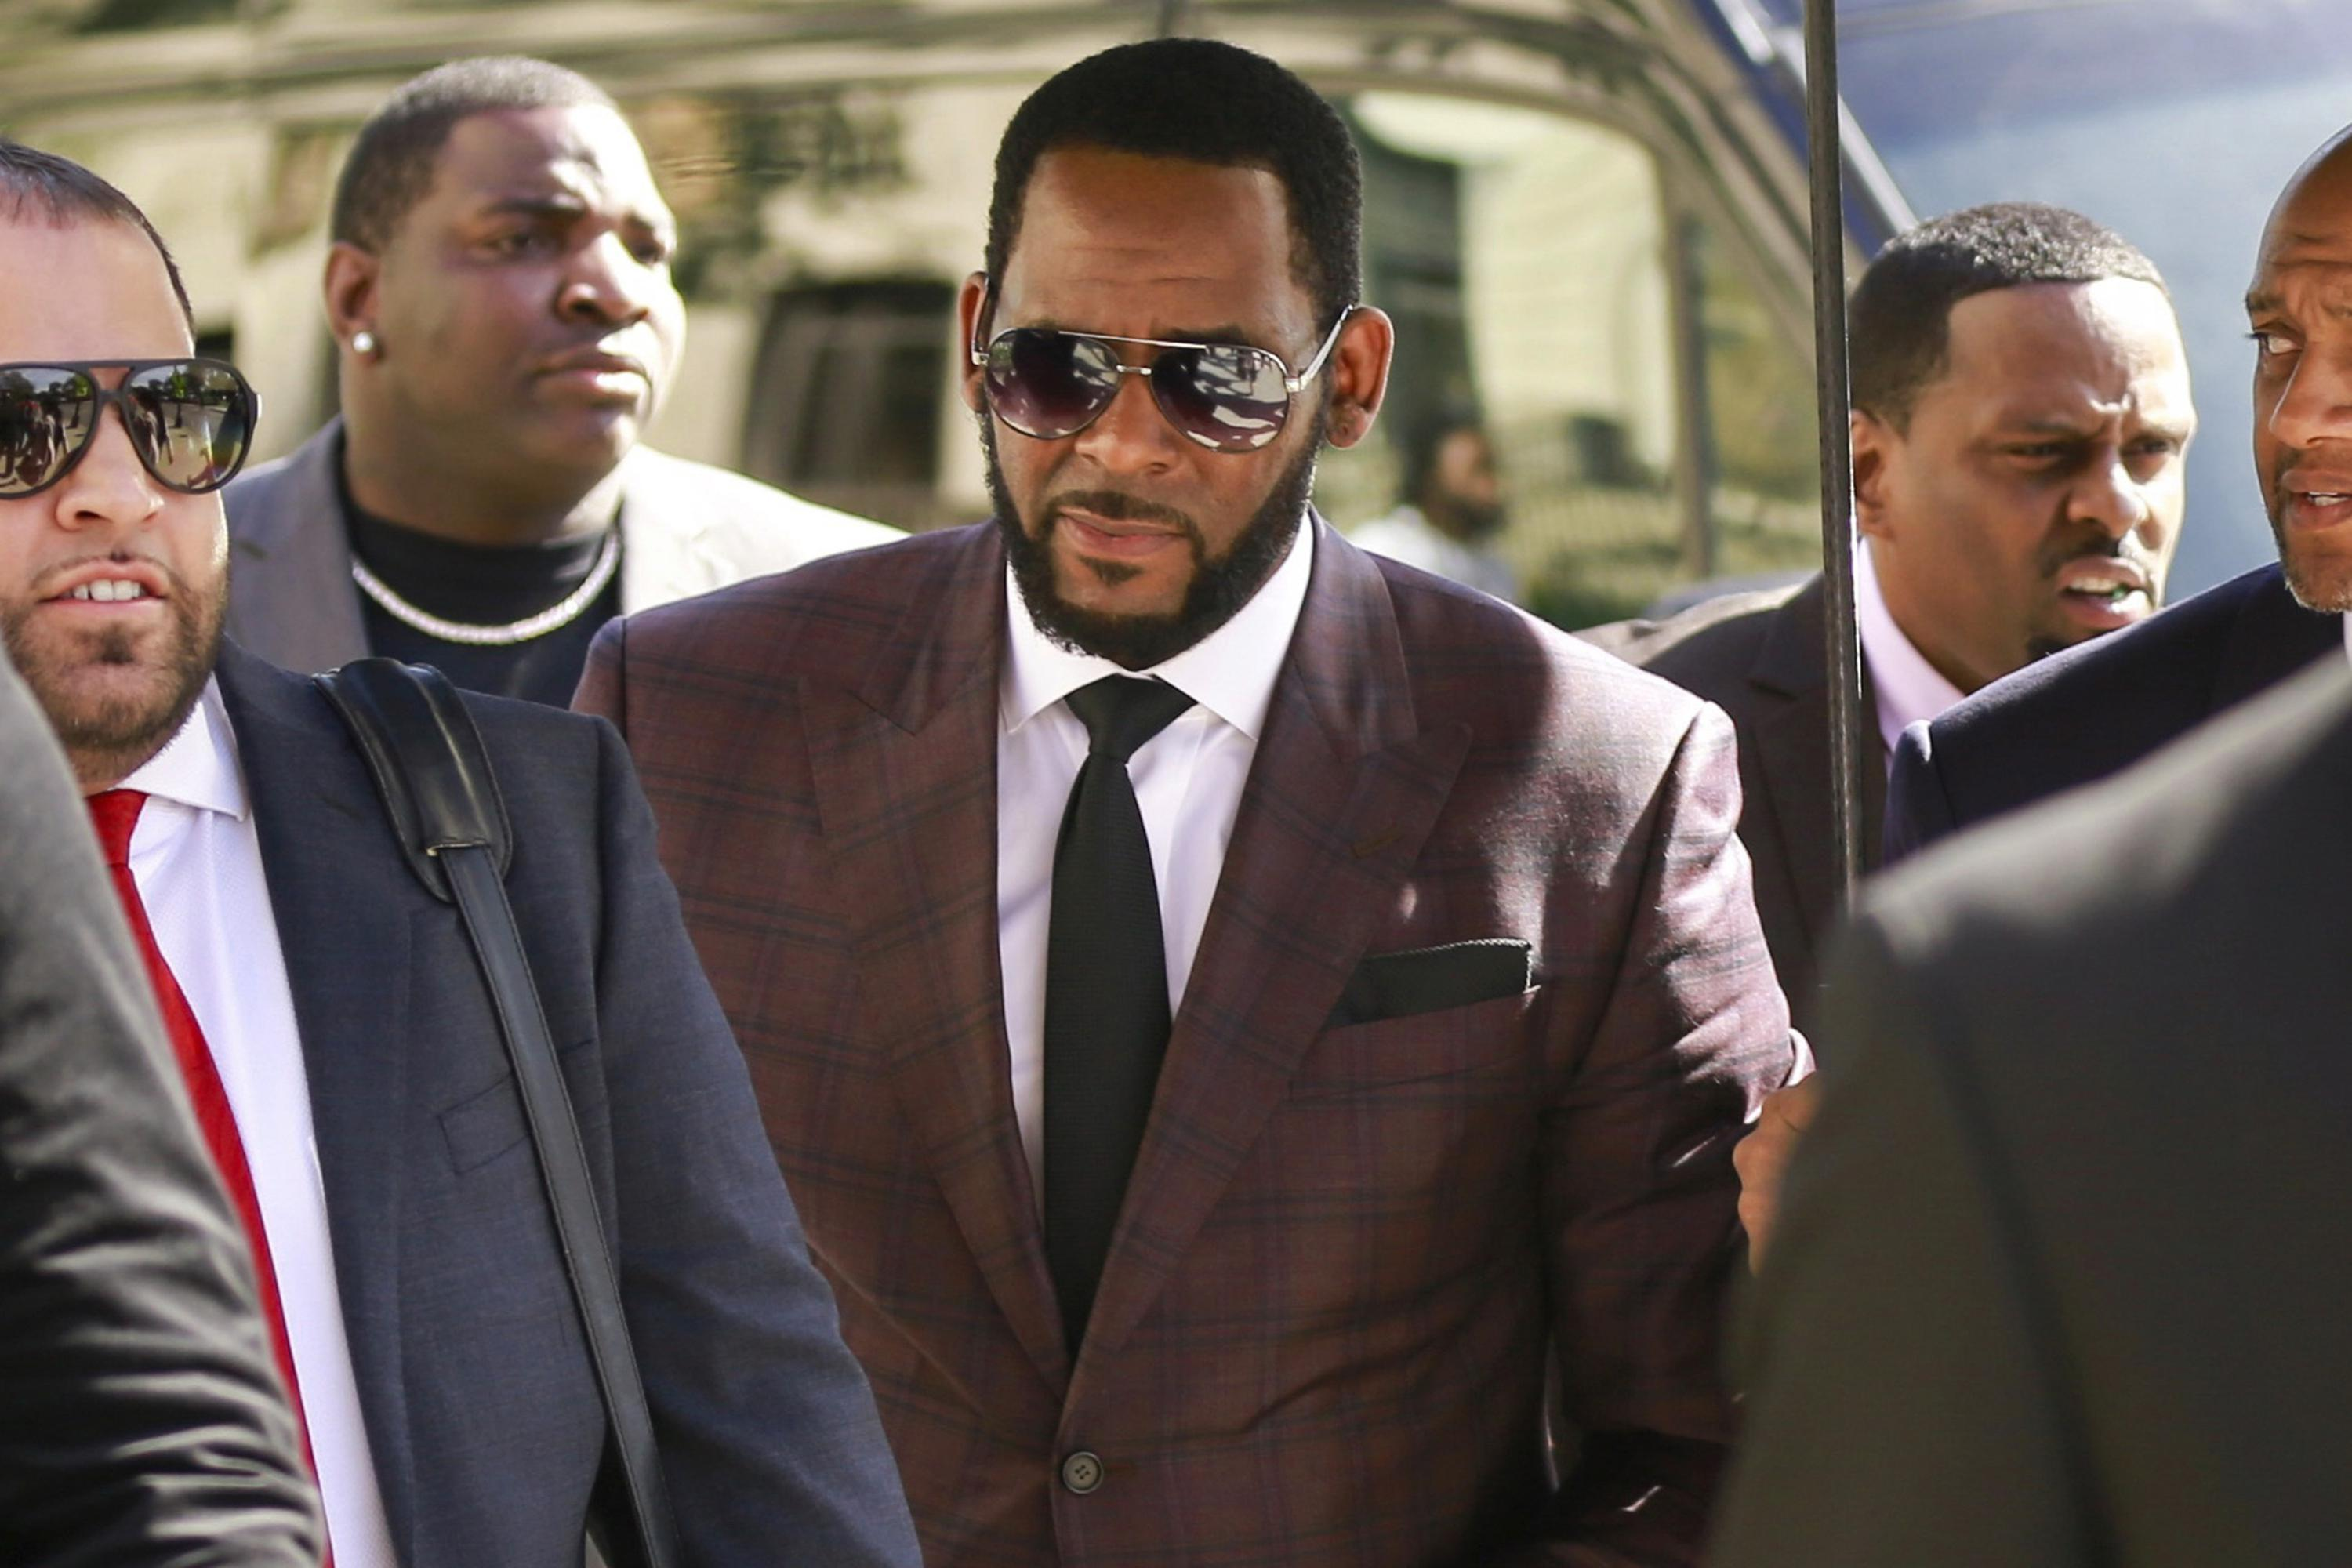 Prosecutors charge 3 with threatening women in R. Kelly case - The Associated Press